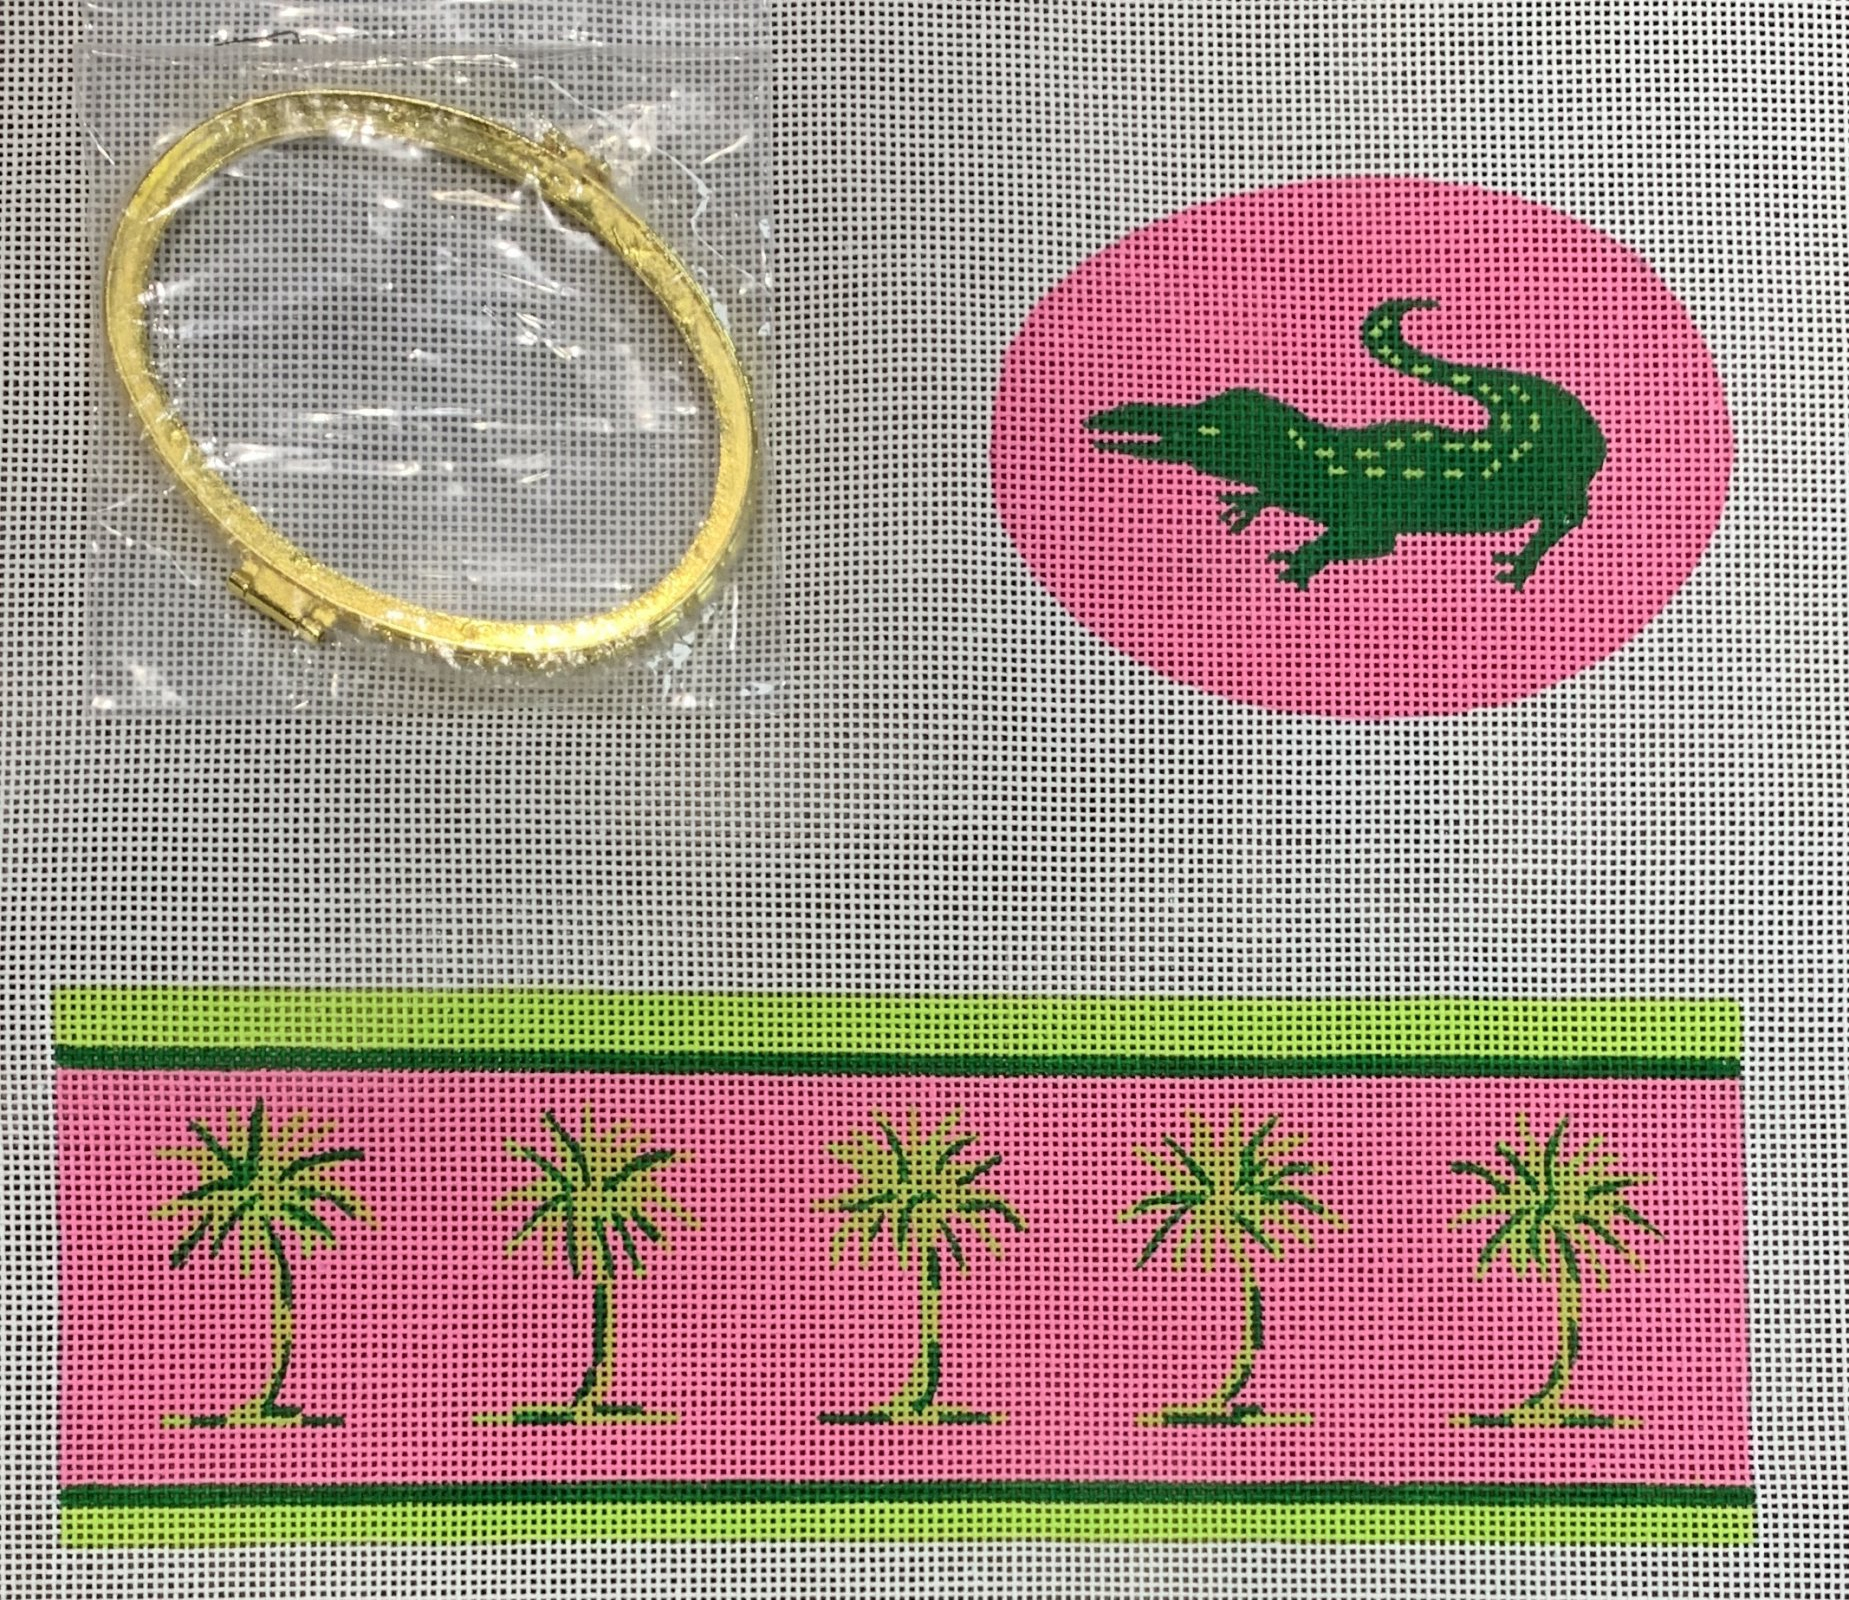 Limoges Box-Lg. Oval Green Gator & Palms on Hot Pink